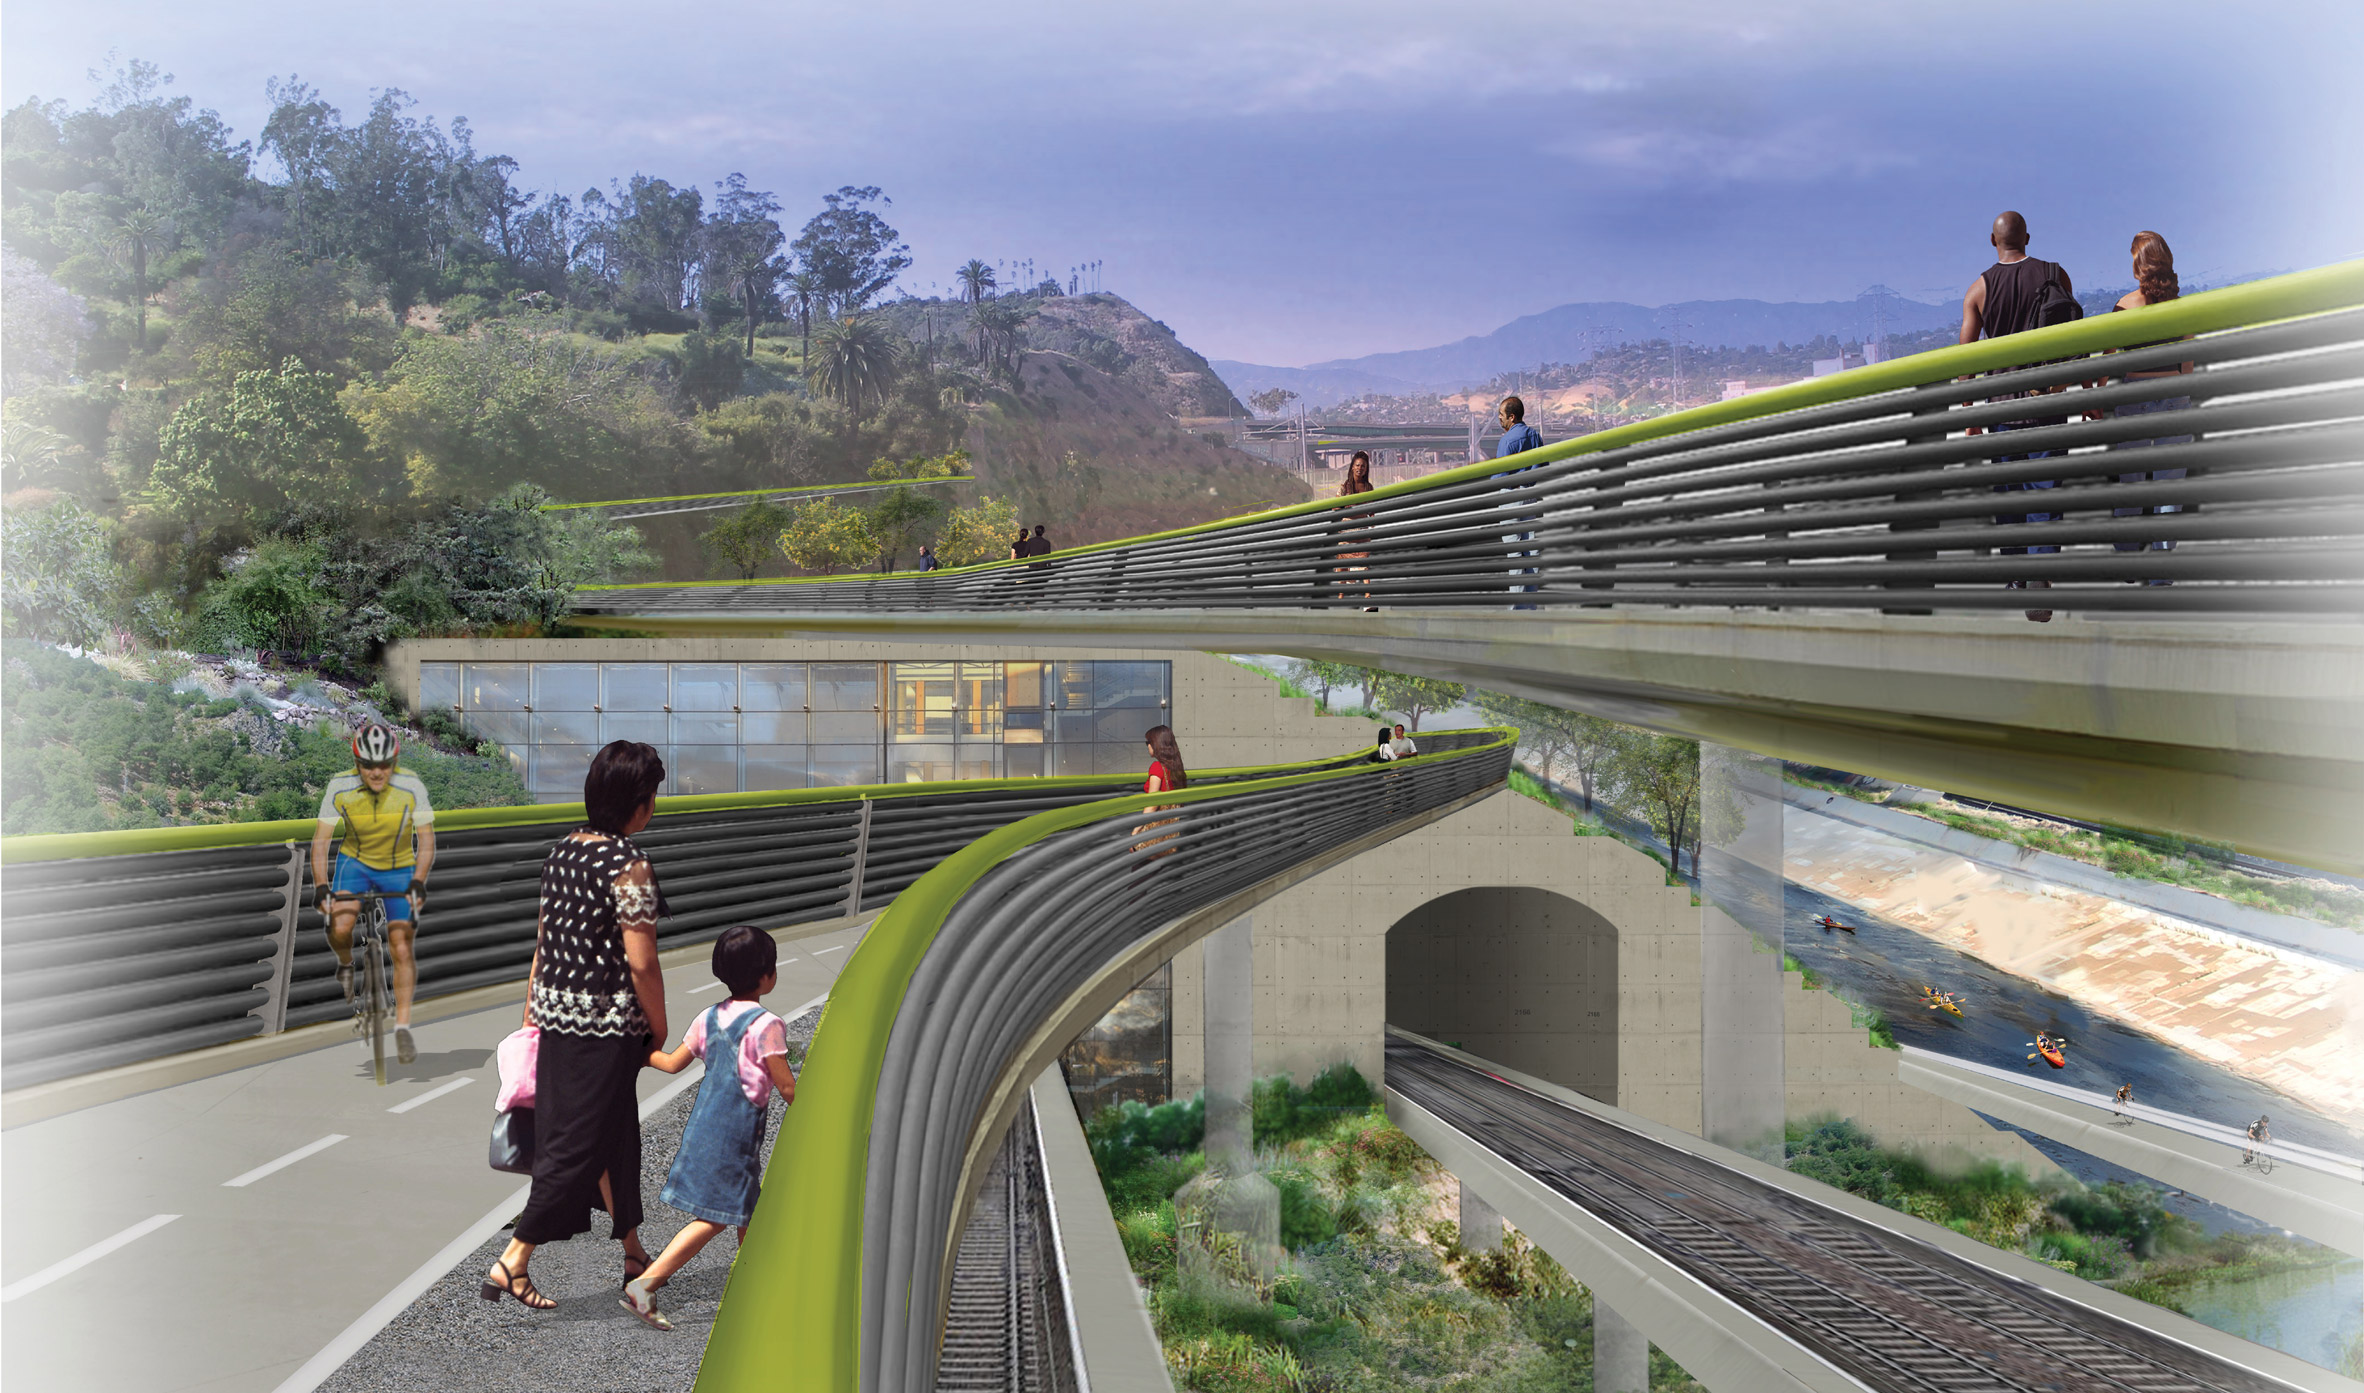 Architects propose seven ways to reinvigorate the Los Angeles river